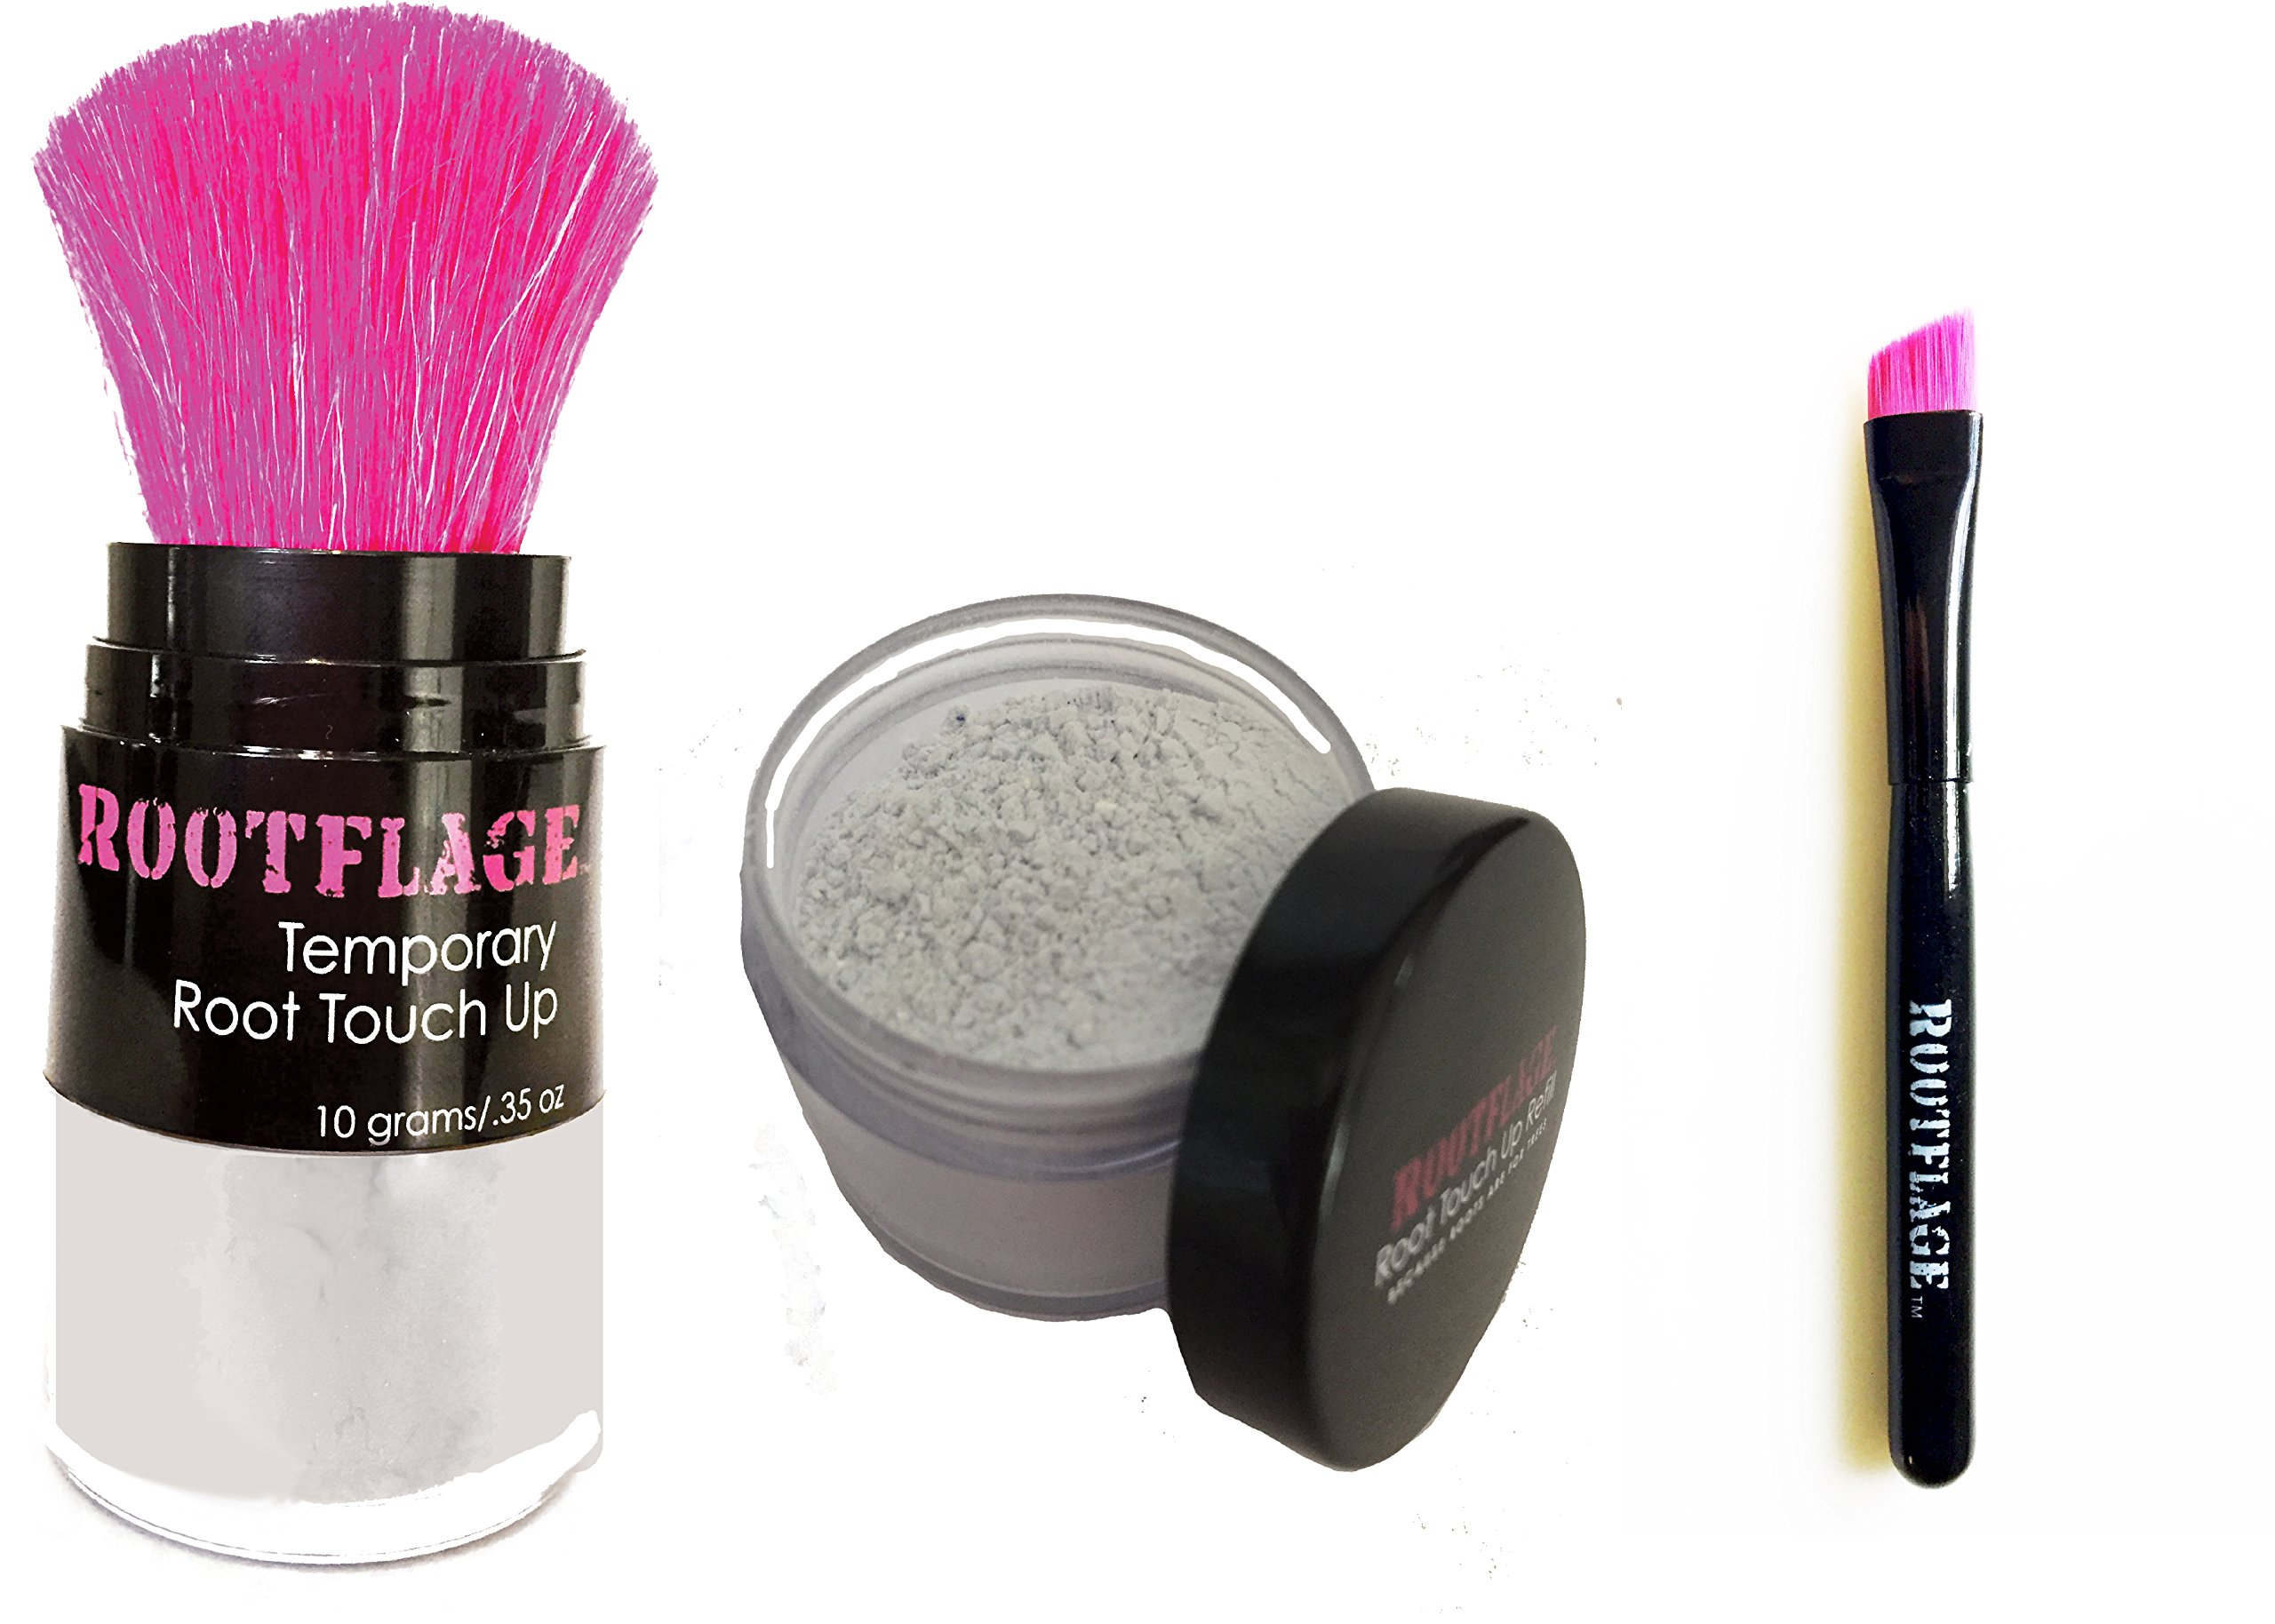 Rootflage Root Touch Up - Icy Platinum White Temporary Hair Color, Brass Banisher, Root Concealer, Thinning Hair Powder with Kabuki Applicator + Rootflage Refill + Small Detail Brush (ICE HOUSE) by Rootflage